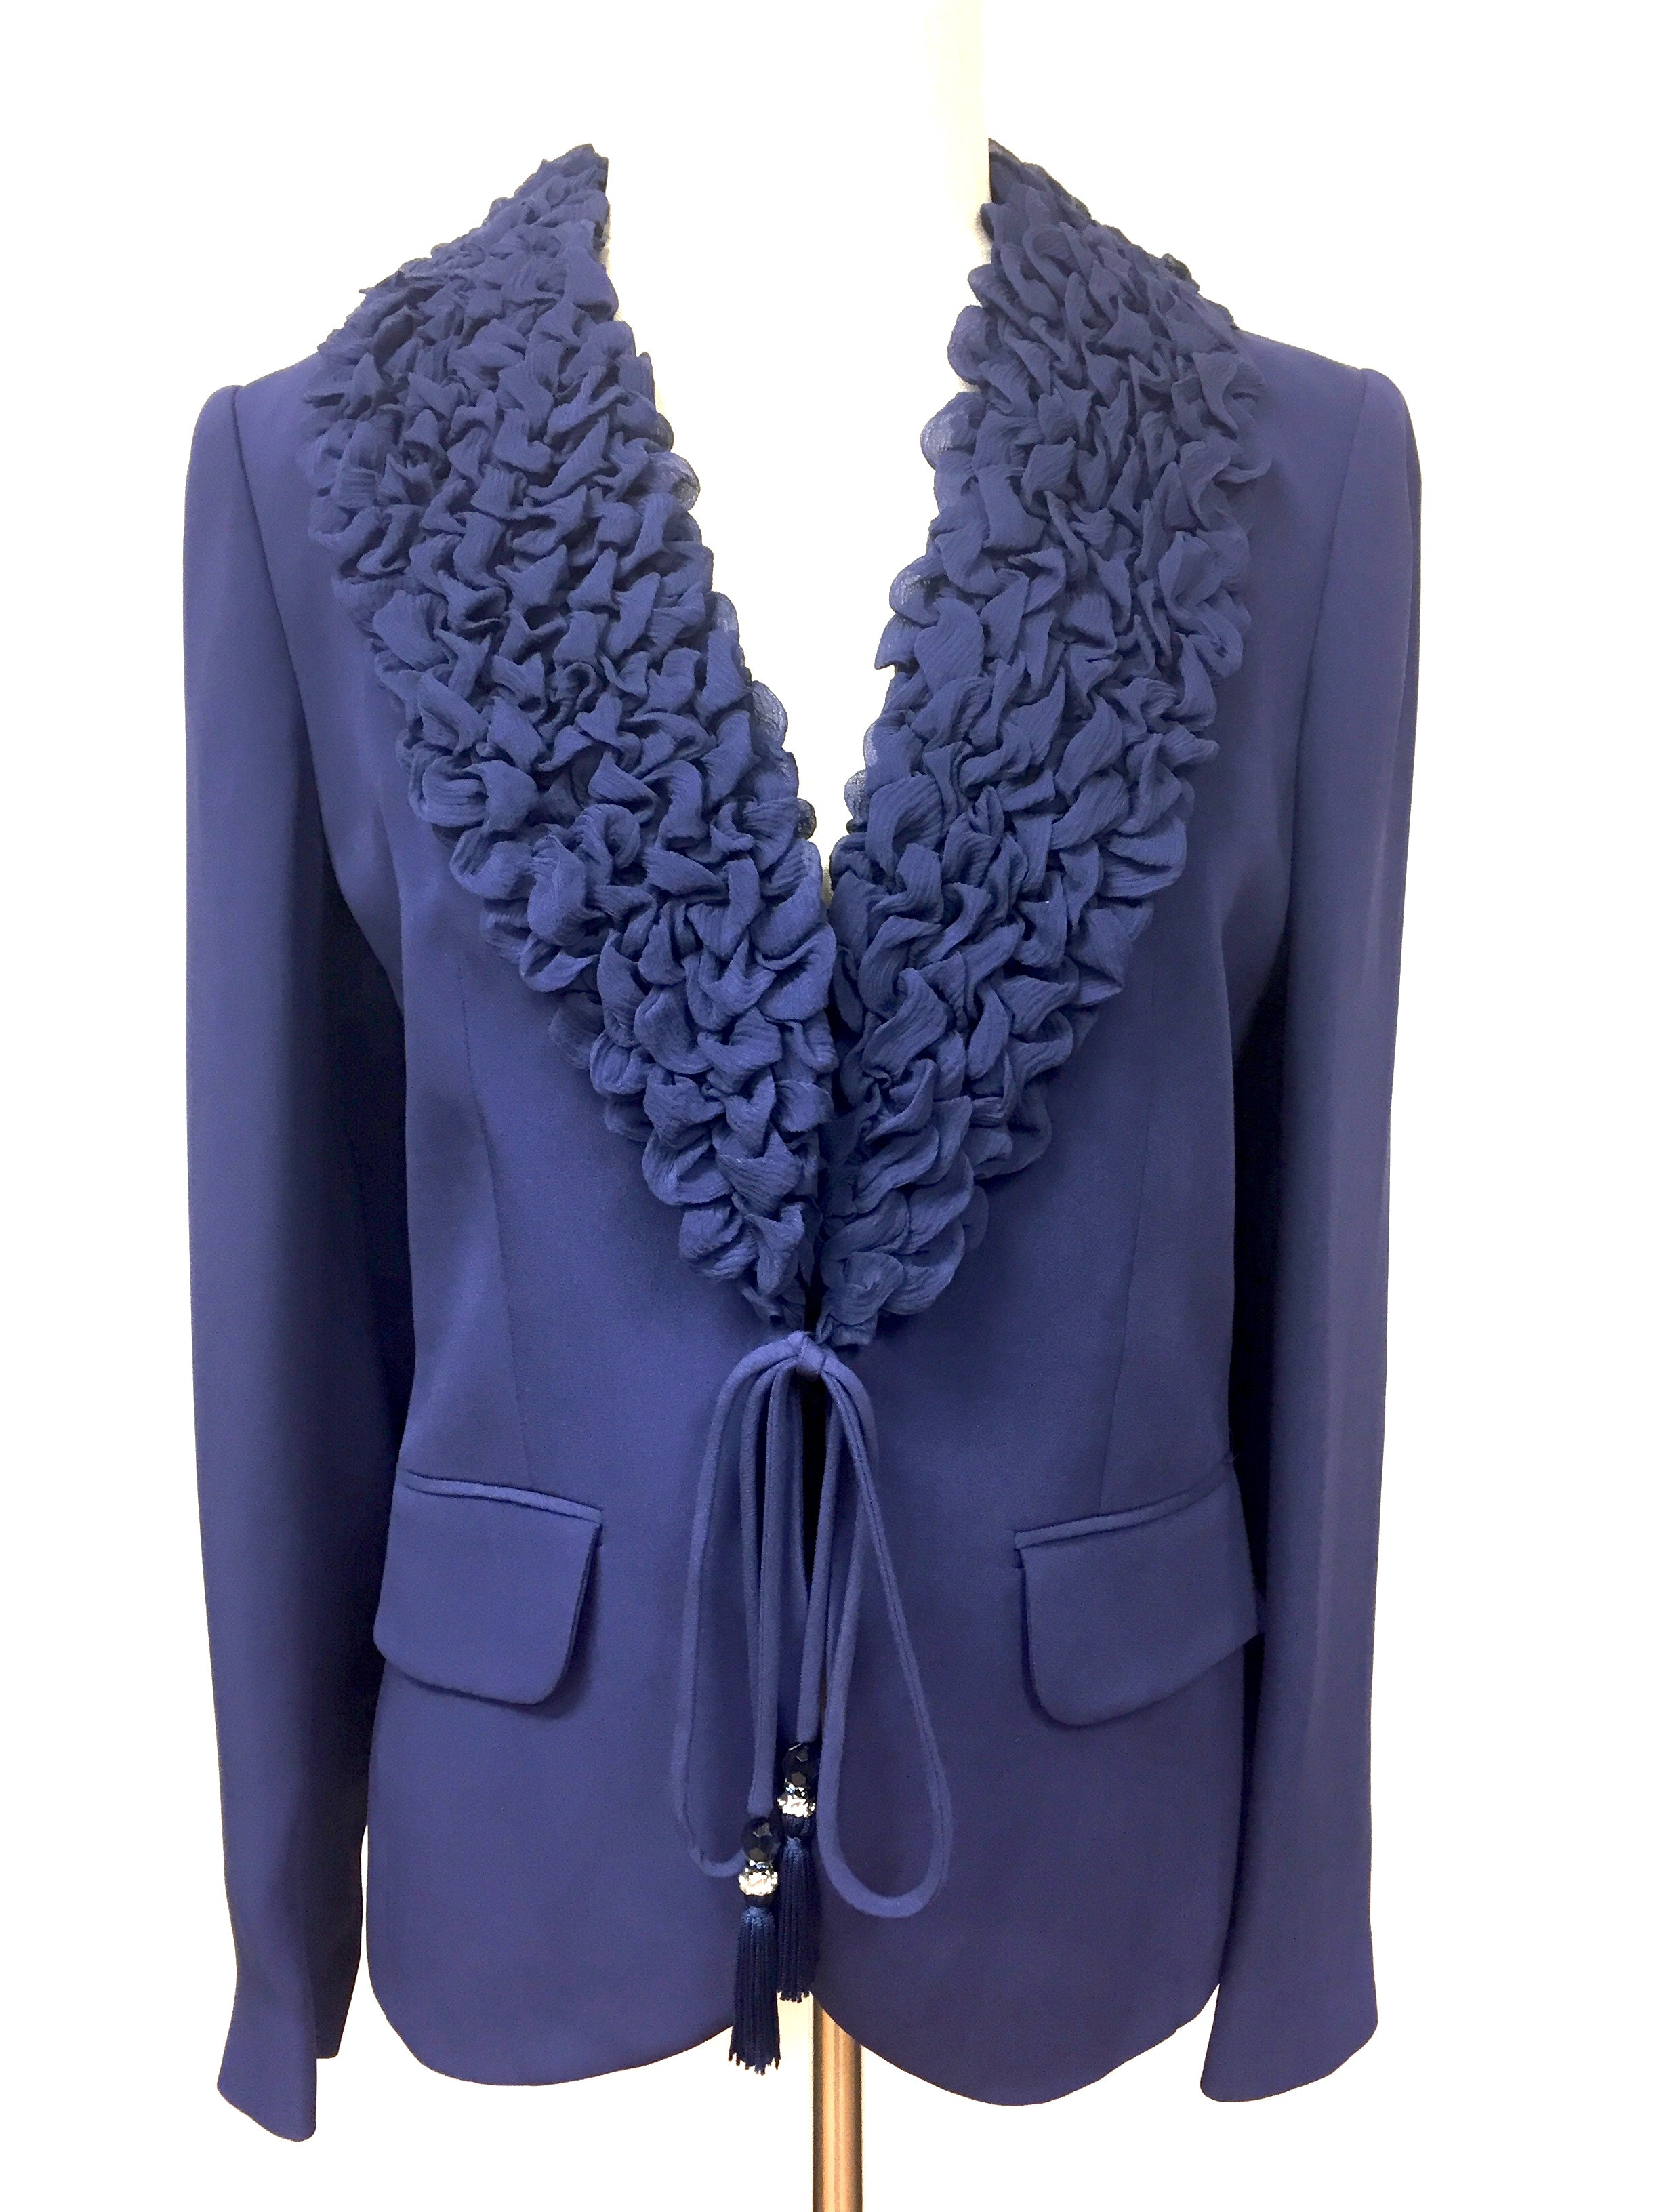 6ea83a063a LUISA SPAGNOLI New with Tags Lavender-Blue Silk Bubbled Shawl Collar  Jeweled Buttons Dress Jacket Size: IT 44 / US 10